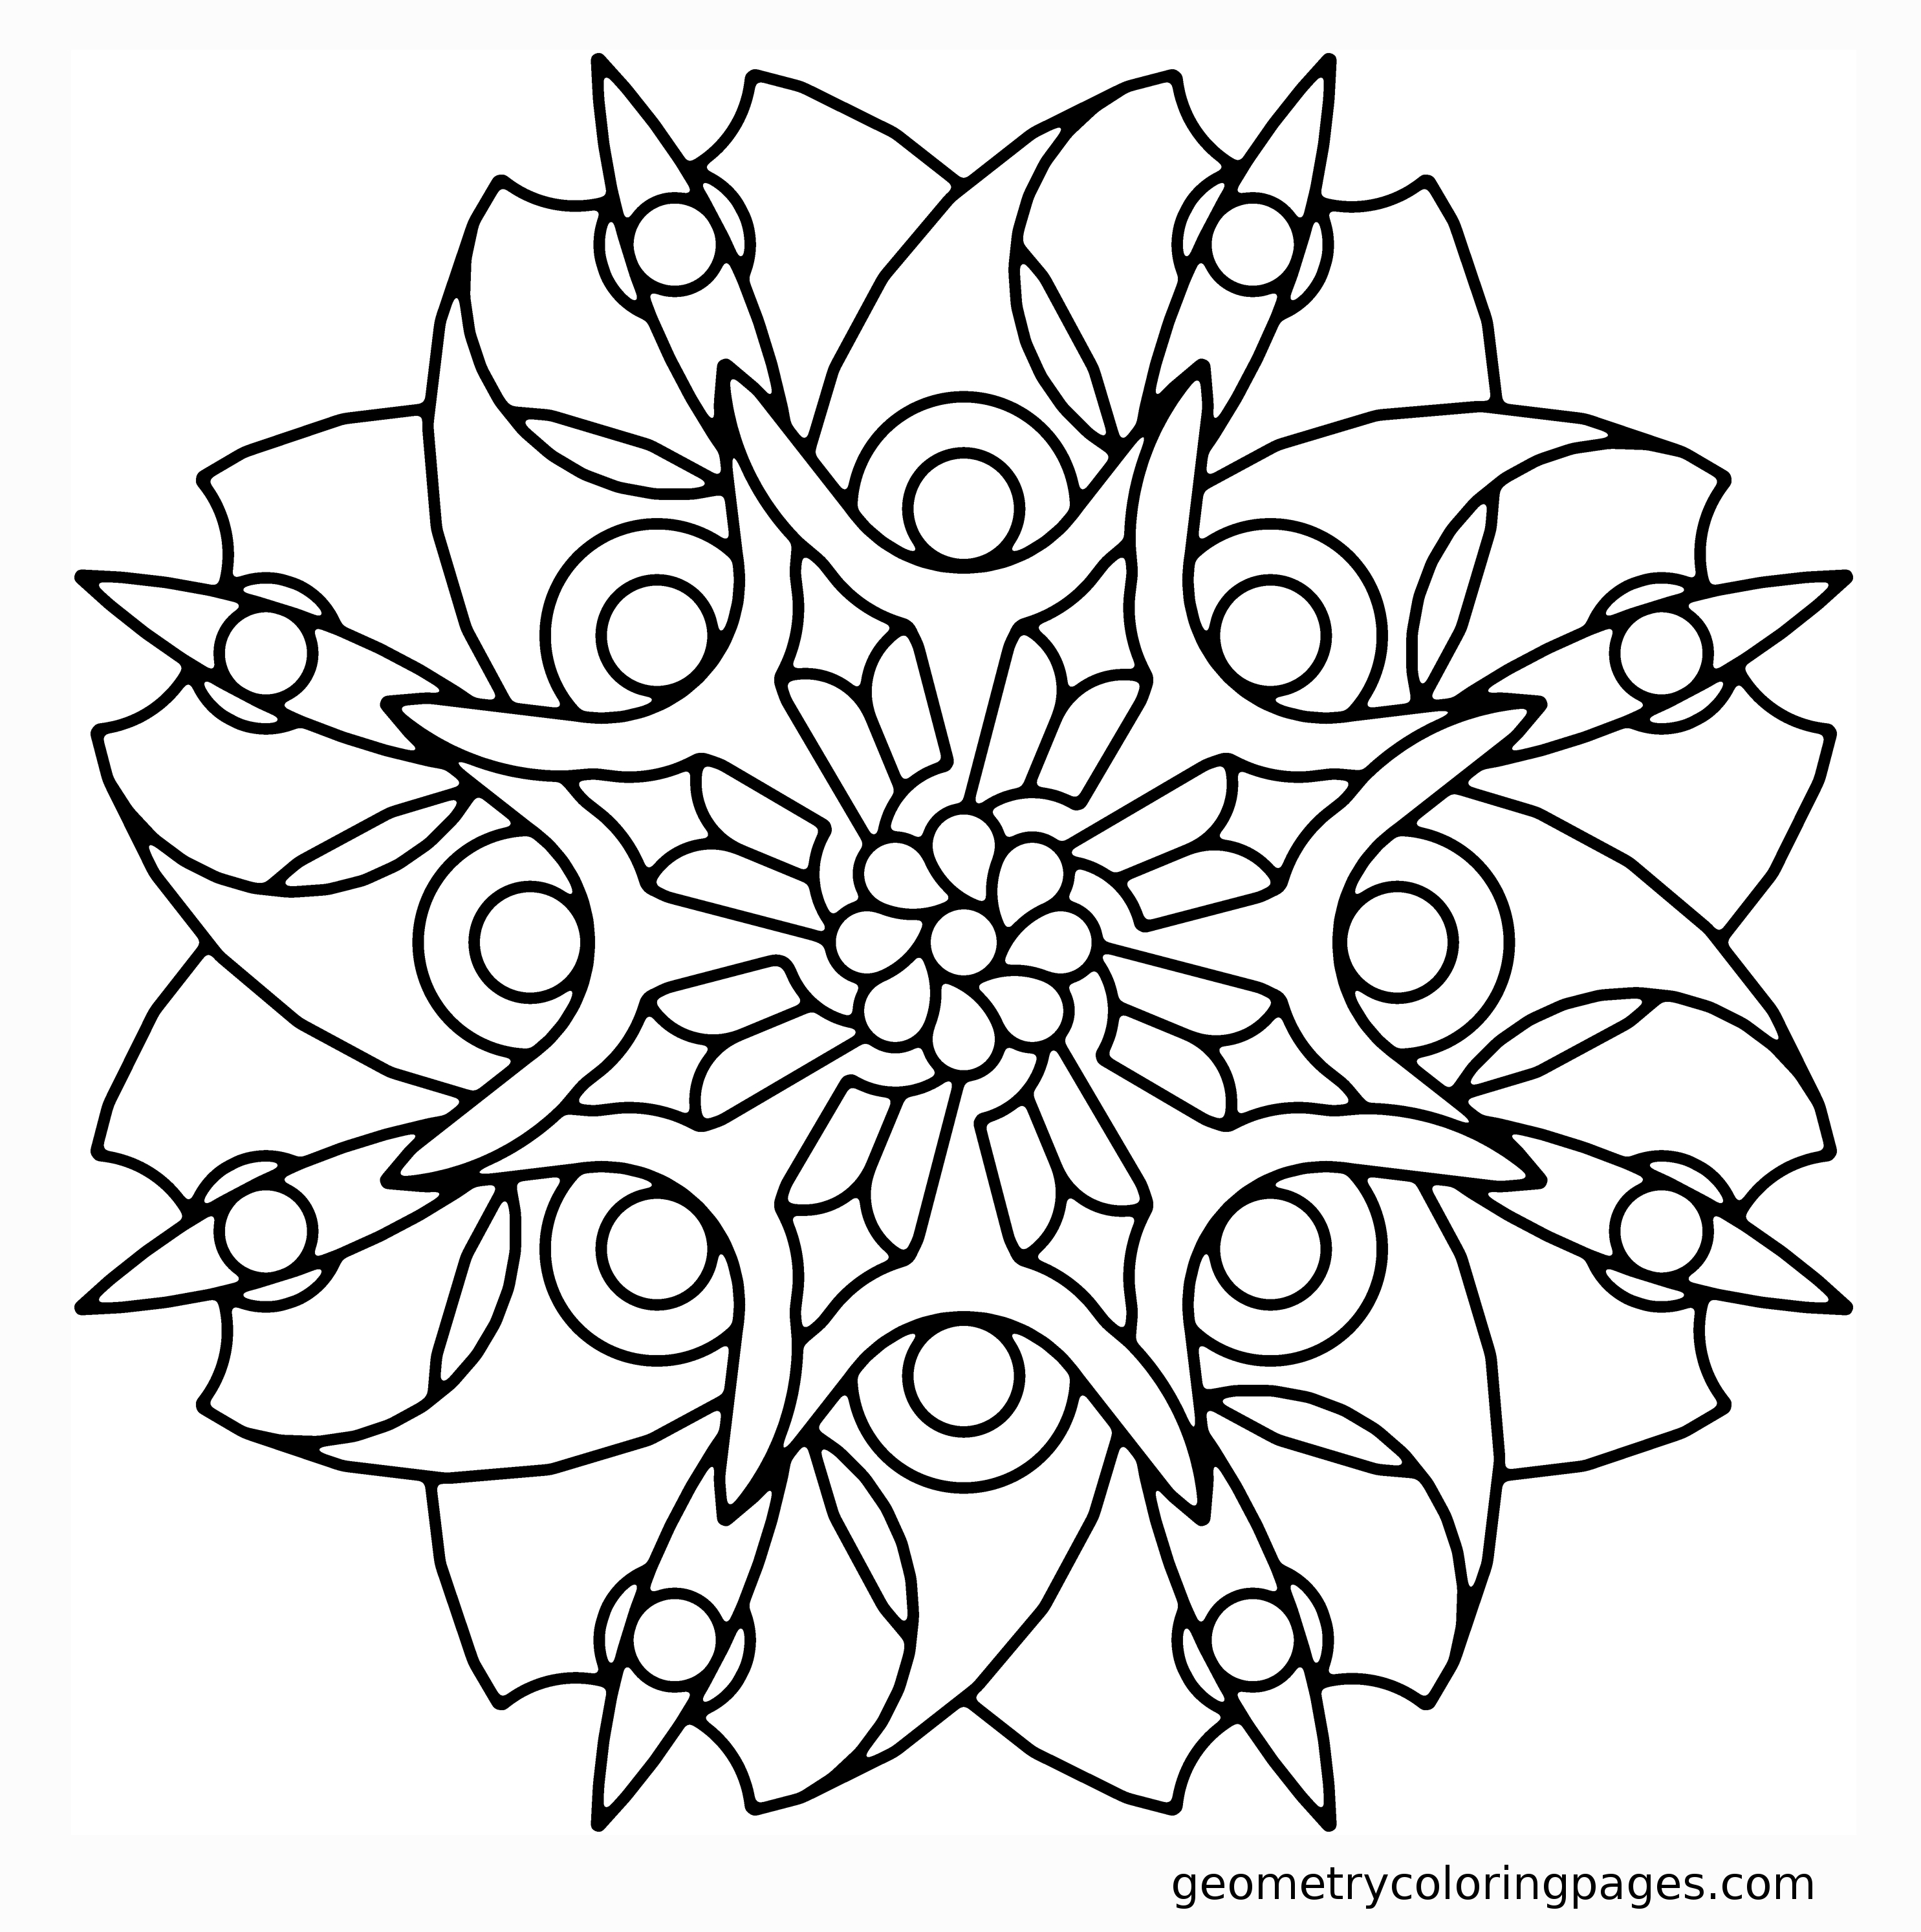 detailed flower coloring pages detailed flower coloring pages to download and print for free pages detailed coloring flower